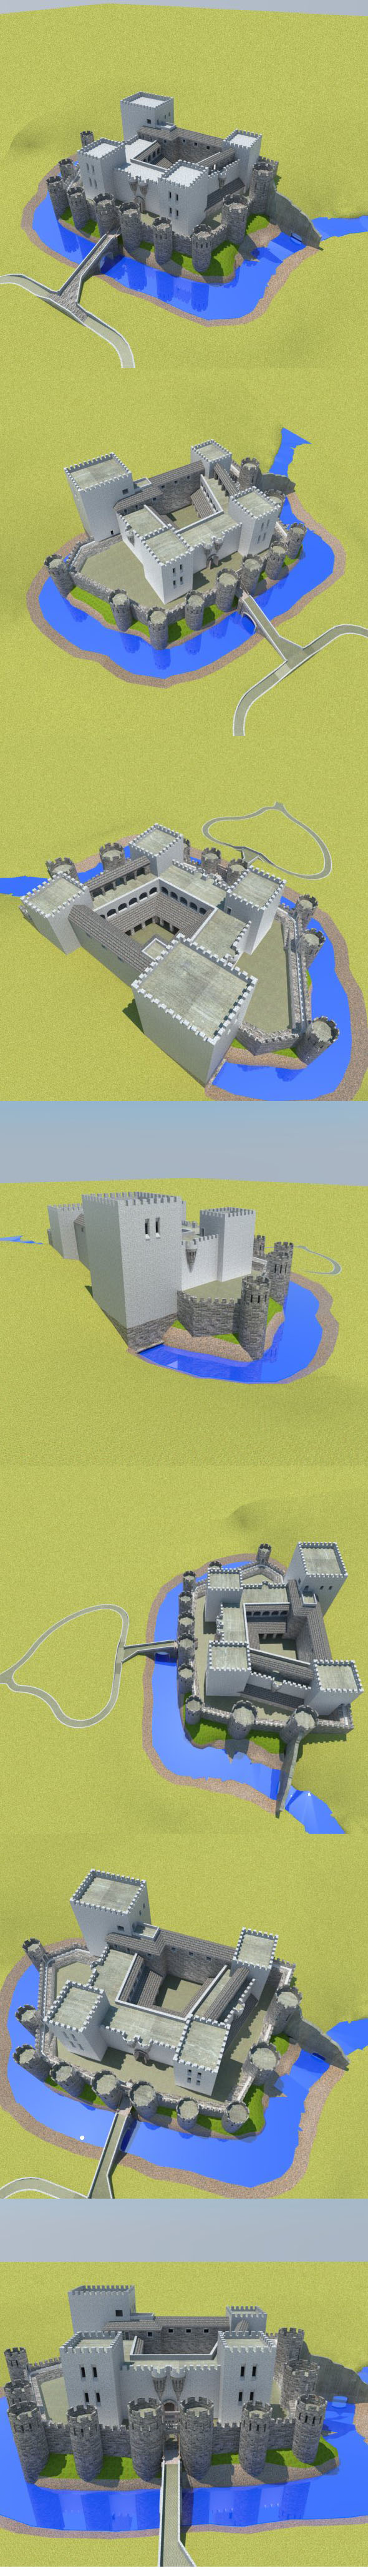 CASTLE low poly - 3DOcean Item for Sale